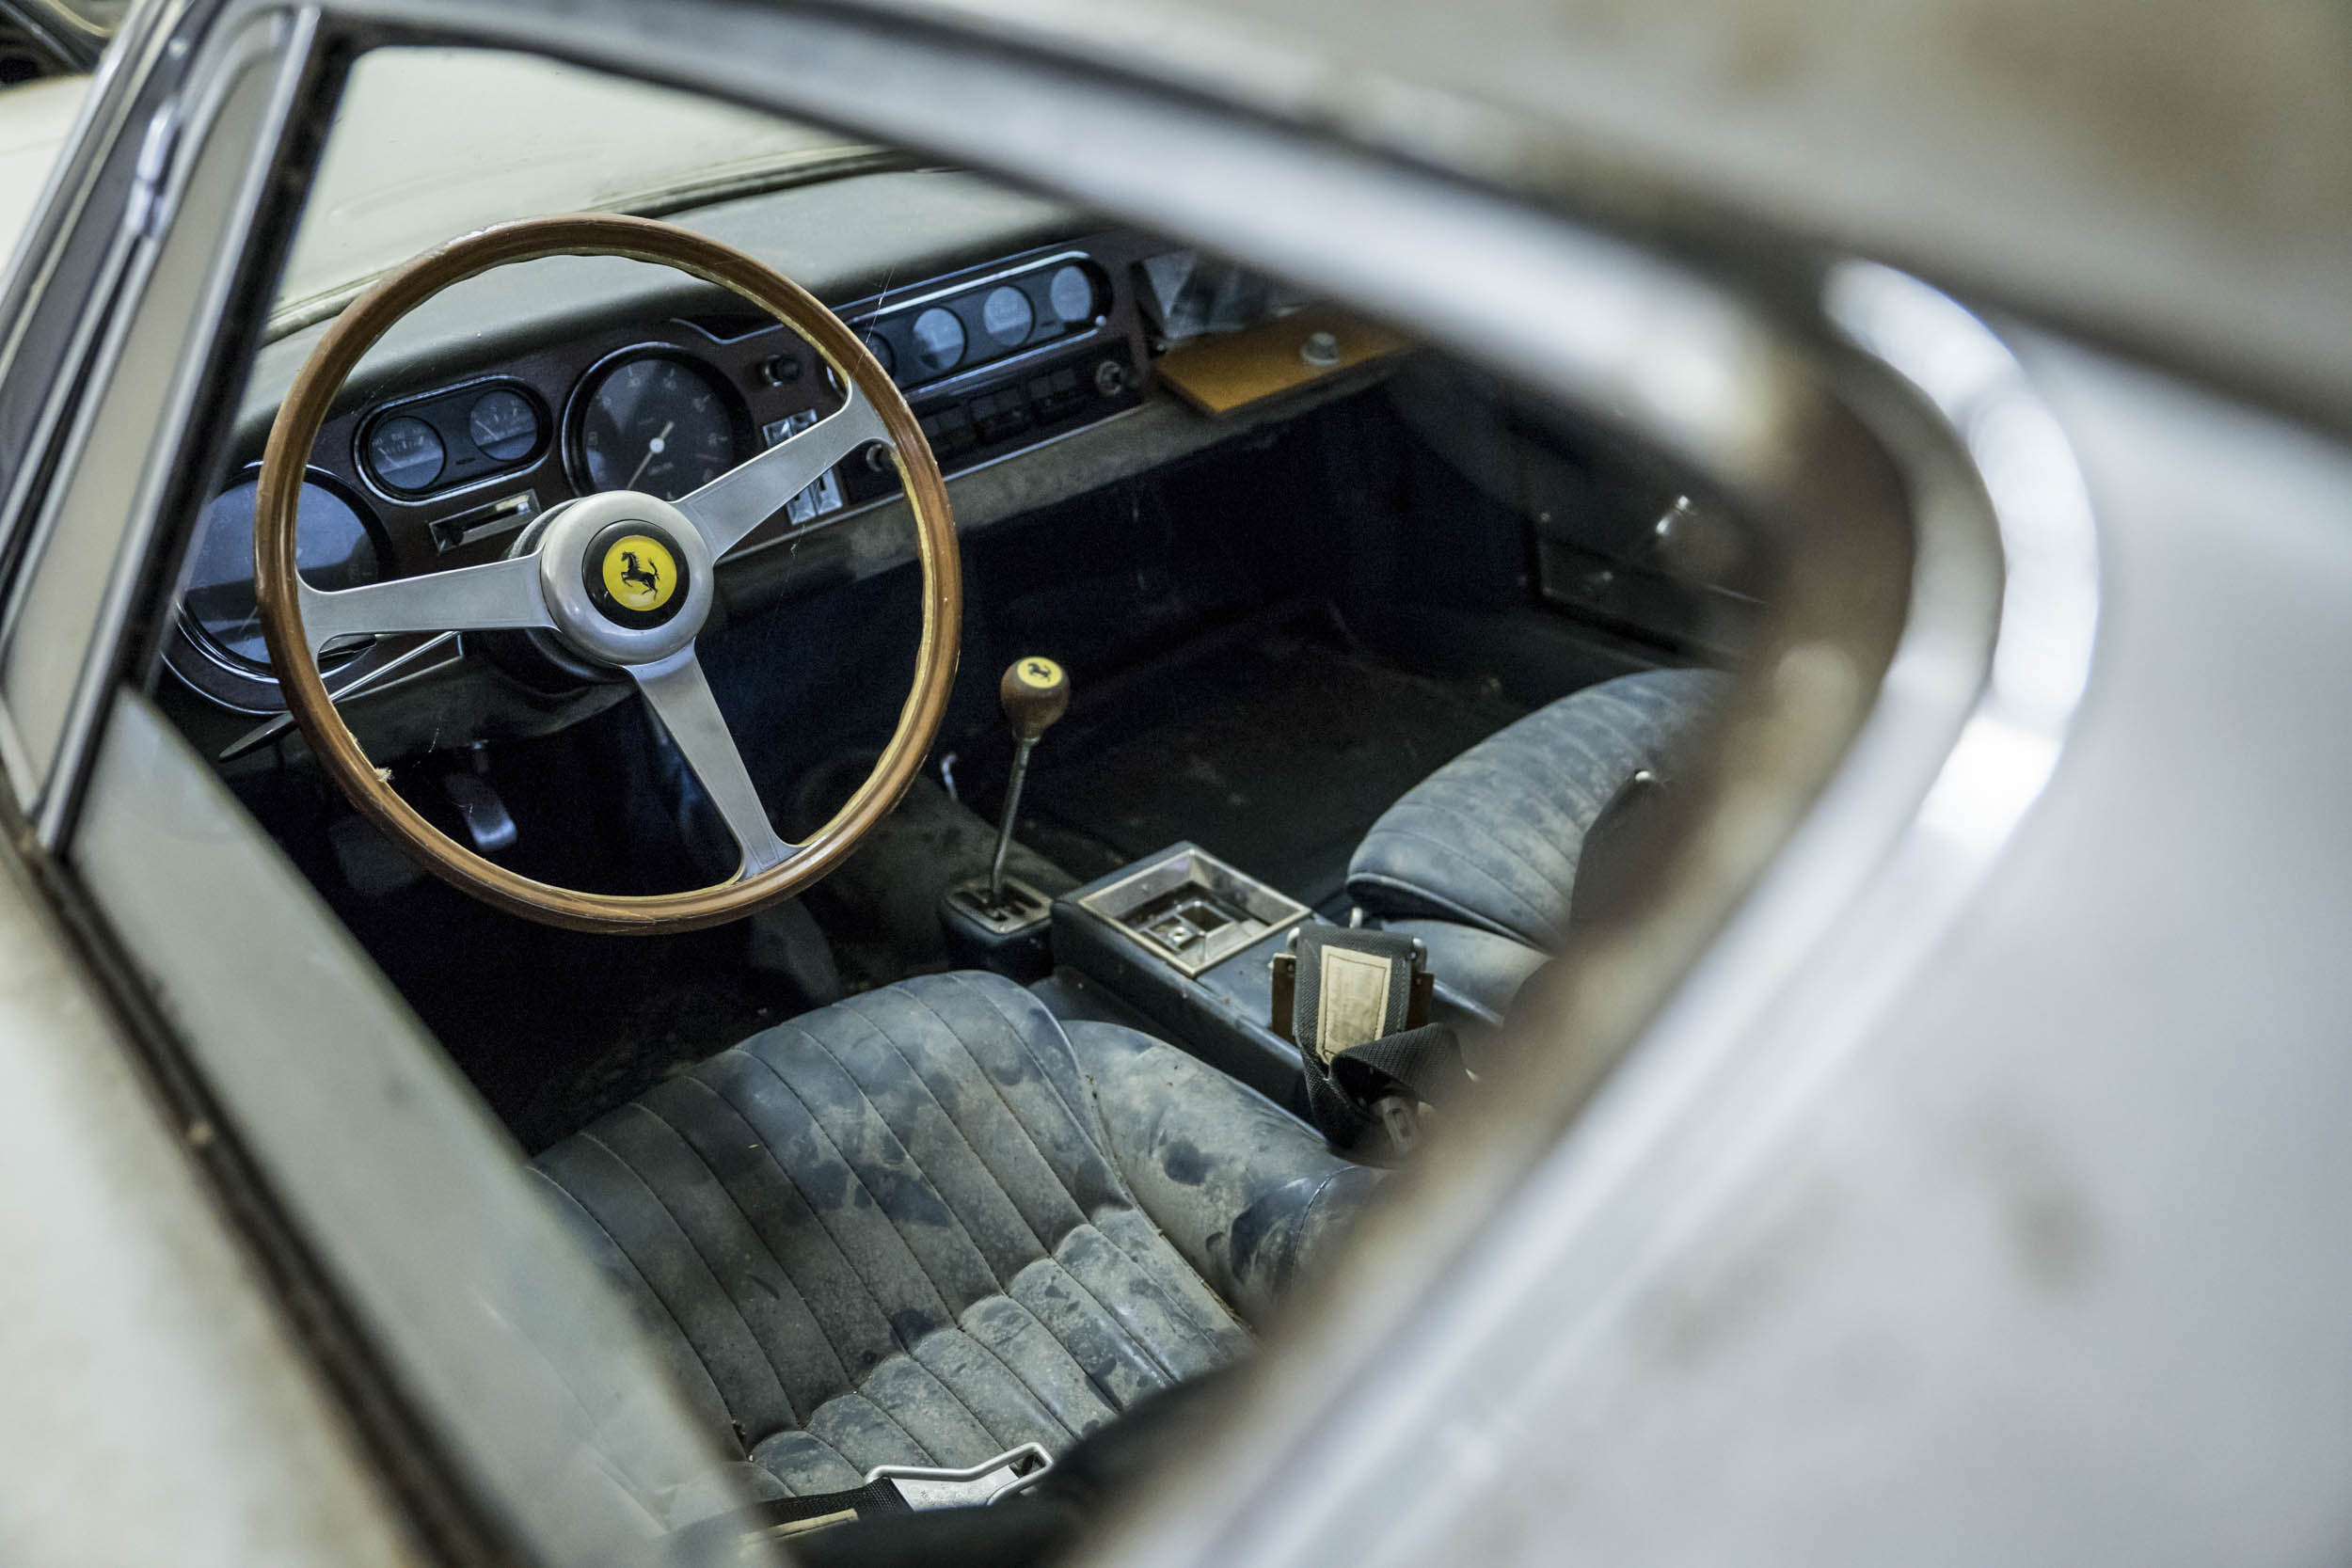 The 13,000-km exotic was exhumed from its dusty cell and sent to auction, where it was sold in asfound condition, filth and all. The bidding was hot and heavy.